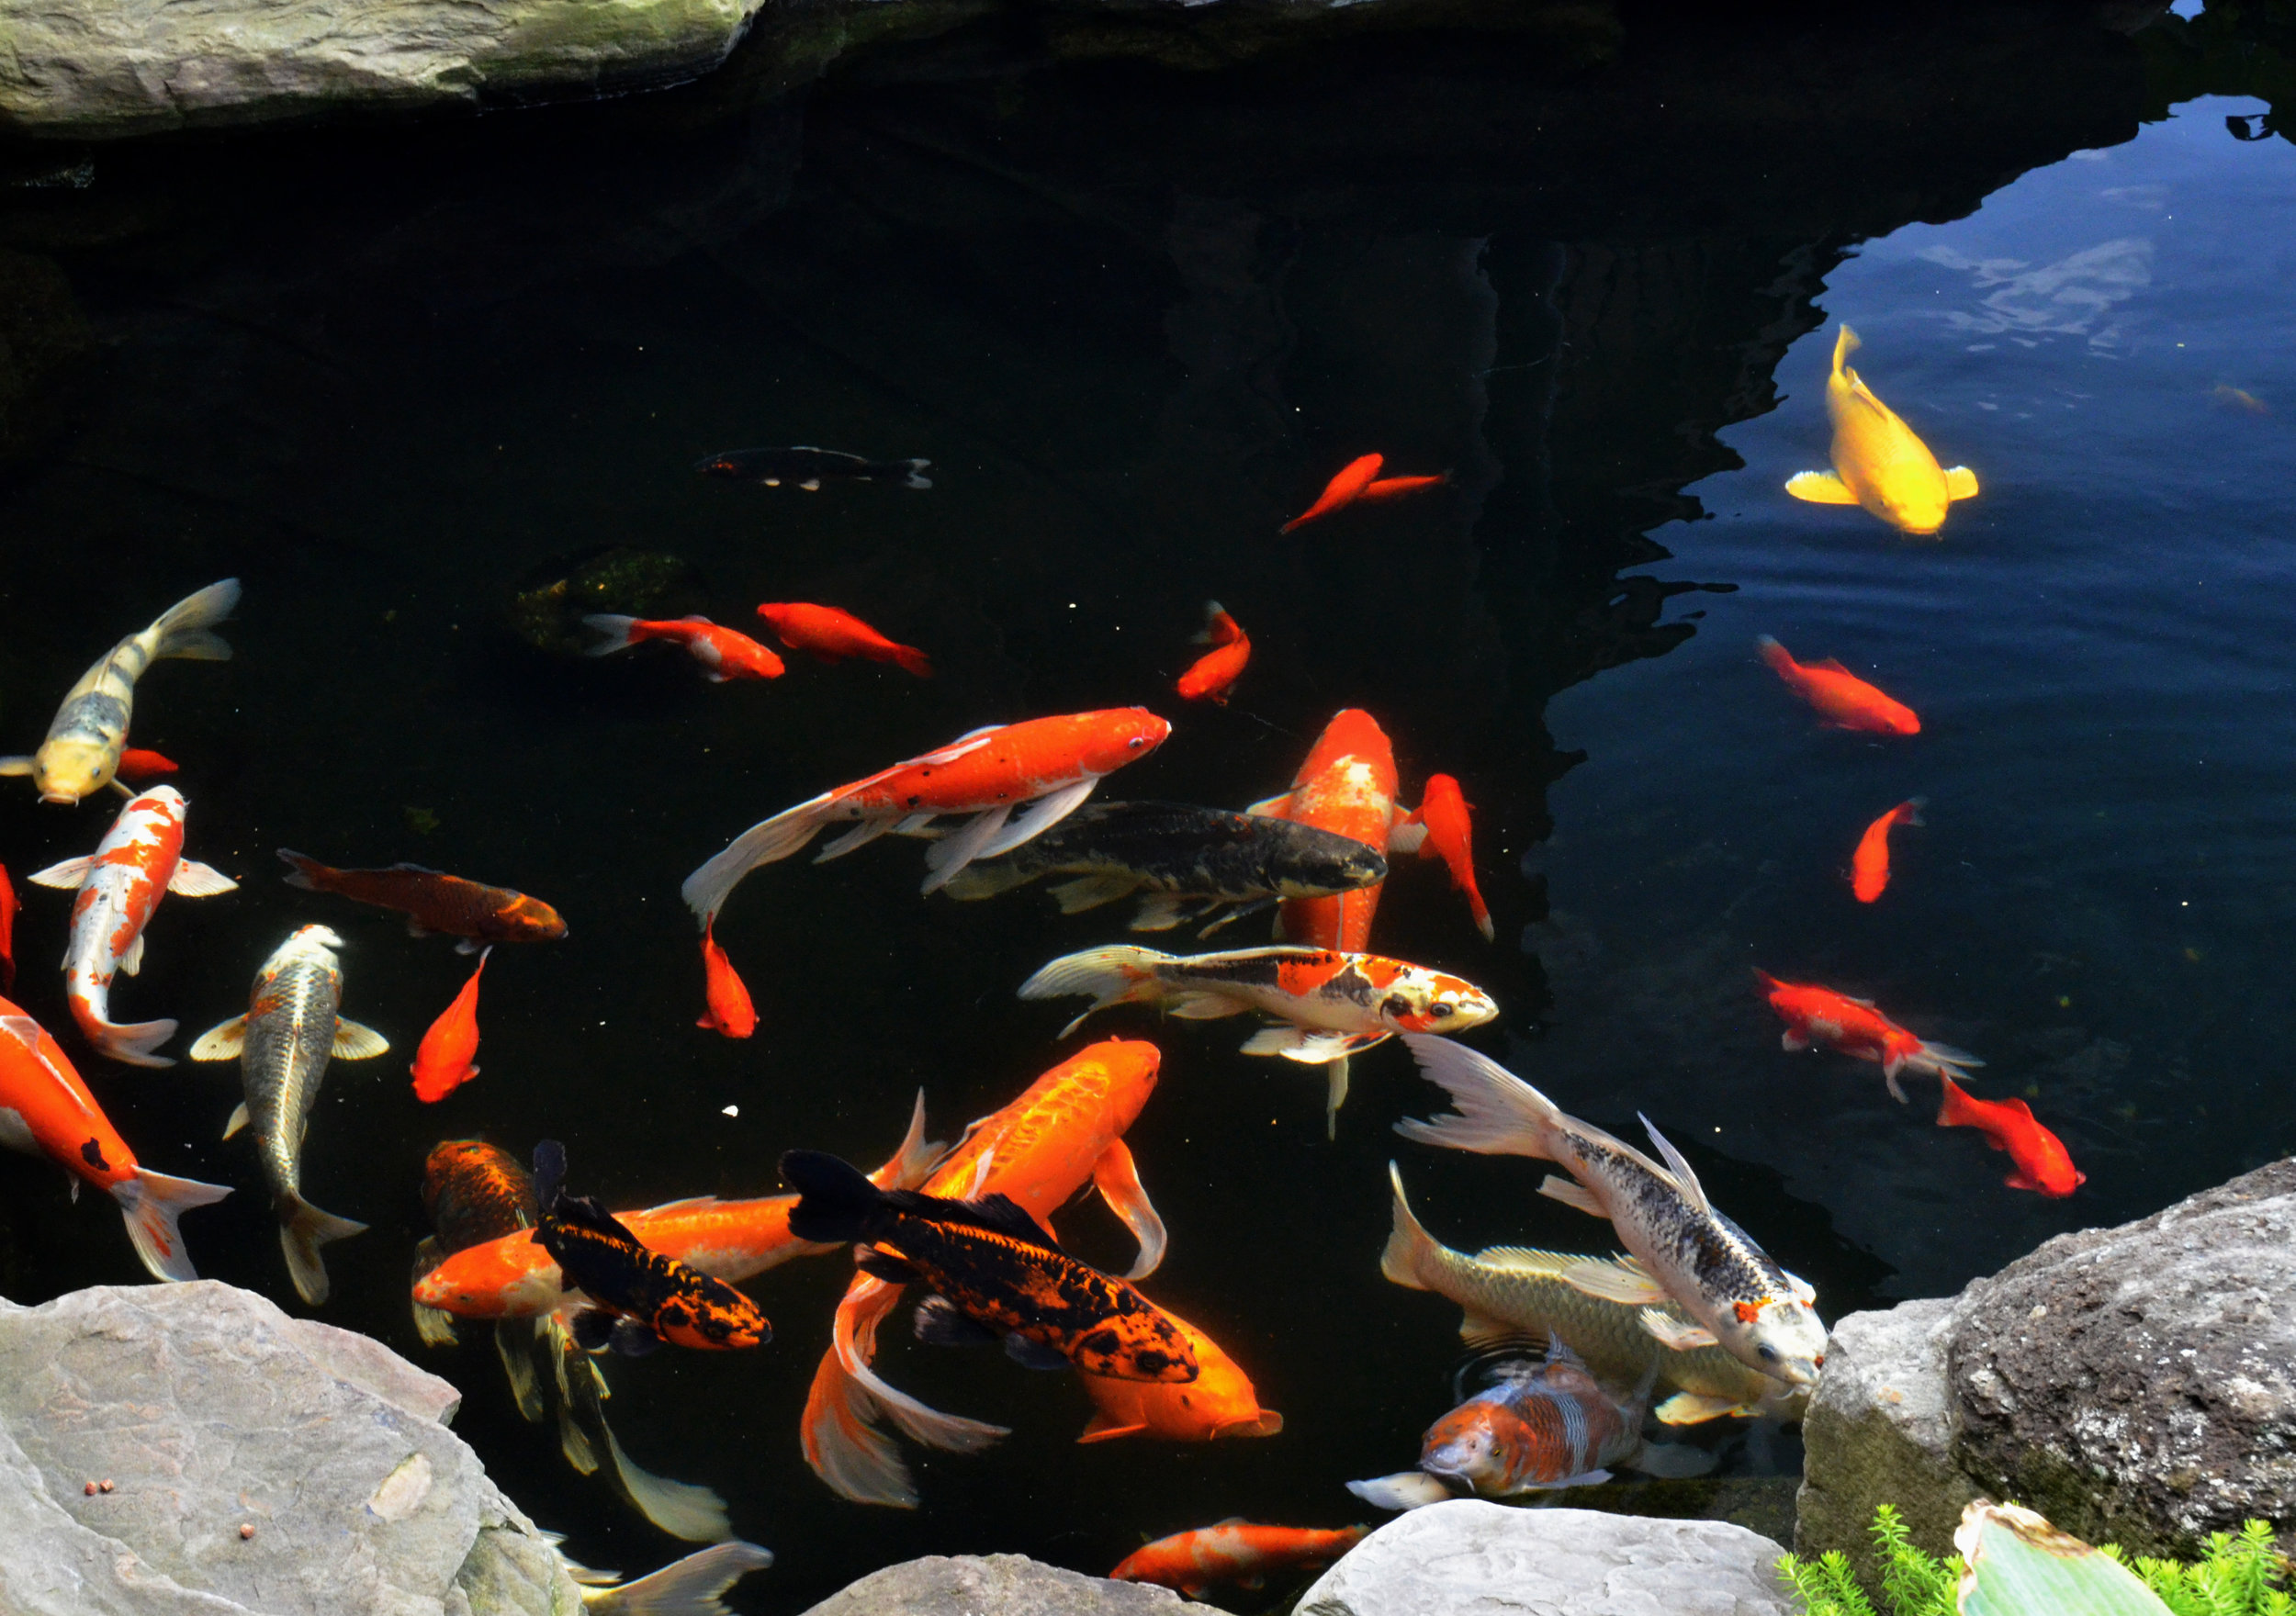 Pondworks_koi pond_koi_fish.jpg